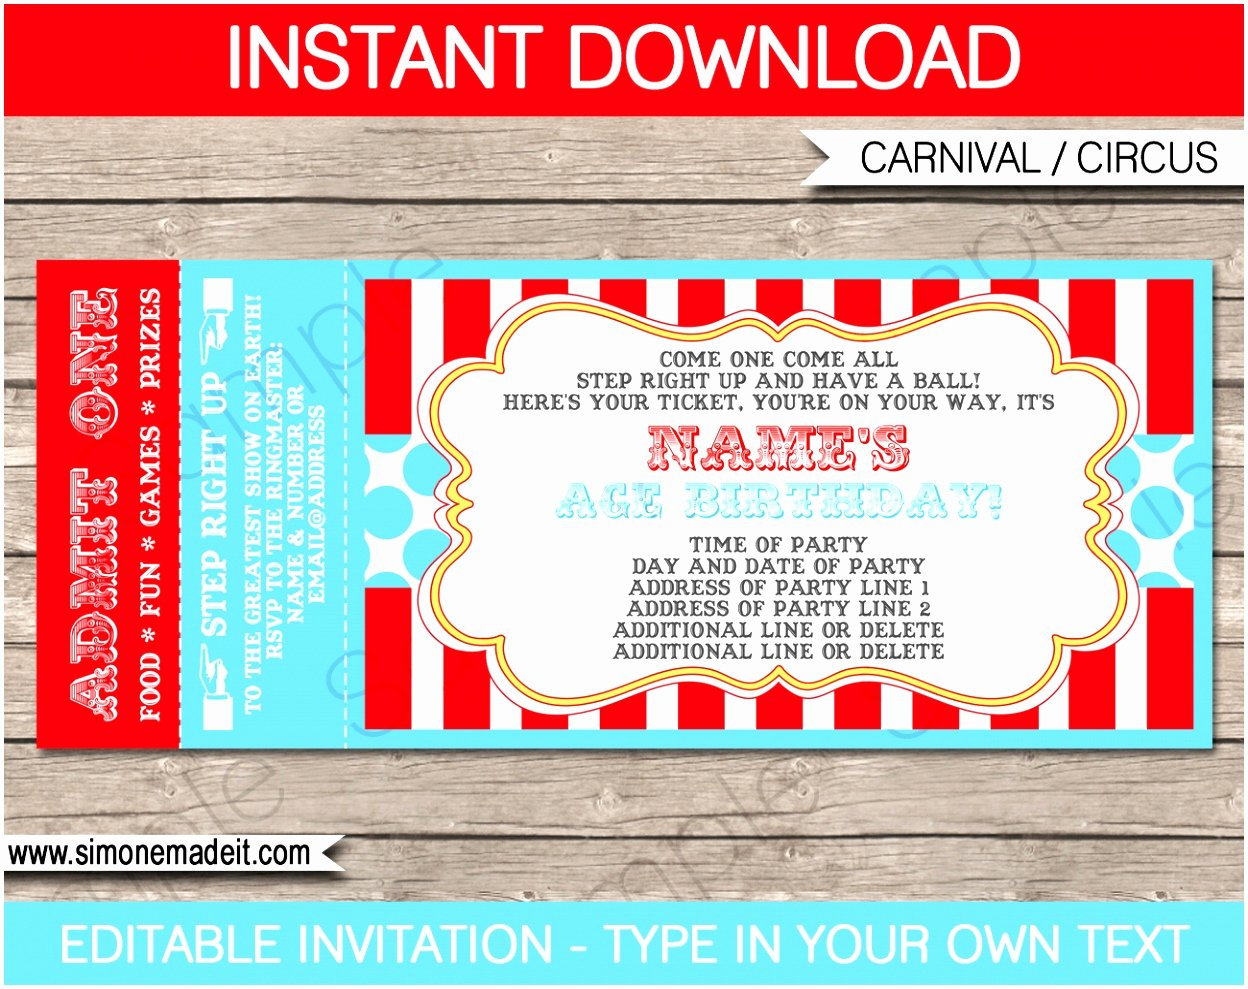 12 Carnival Ticket Invitation Template Prwtv